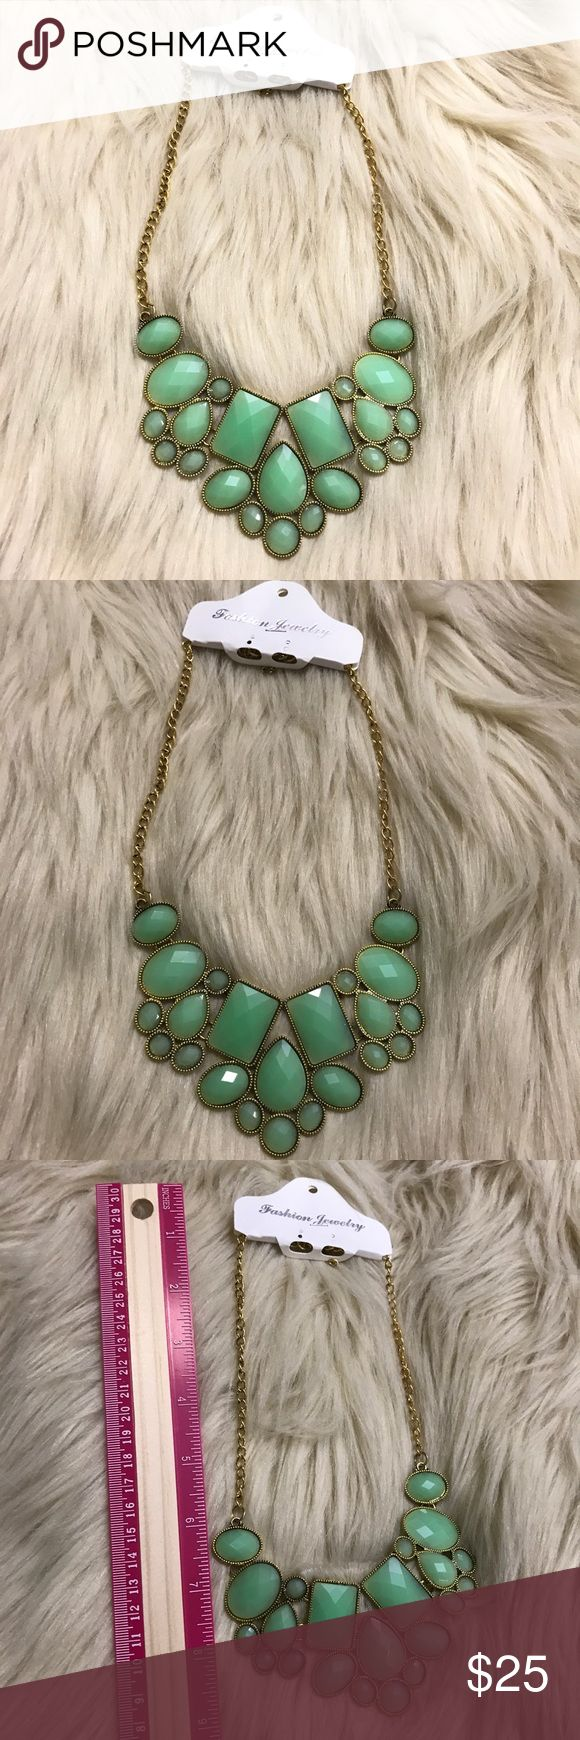 Gorgeous gem stone statement necklace BNWT! 🐾PAWSitively Posh Boutique🐾 Jewelry Necklaces